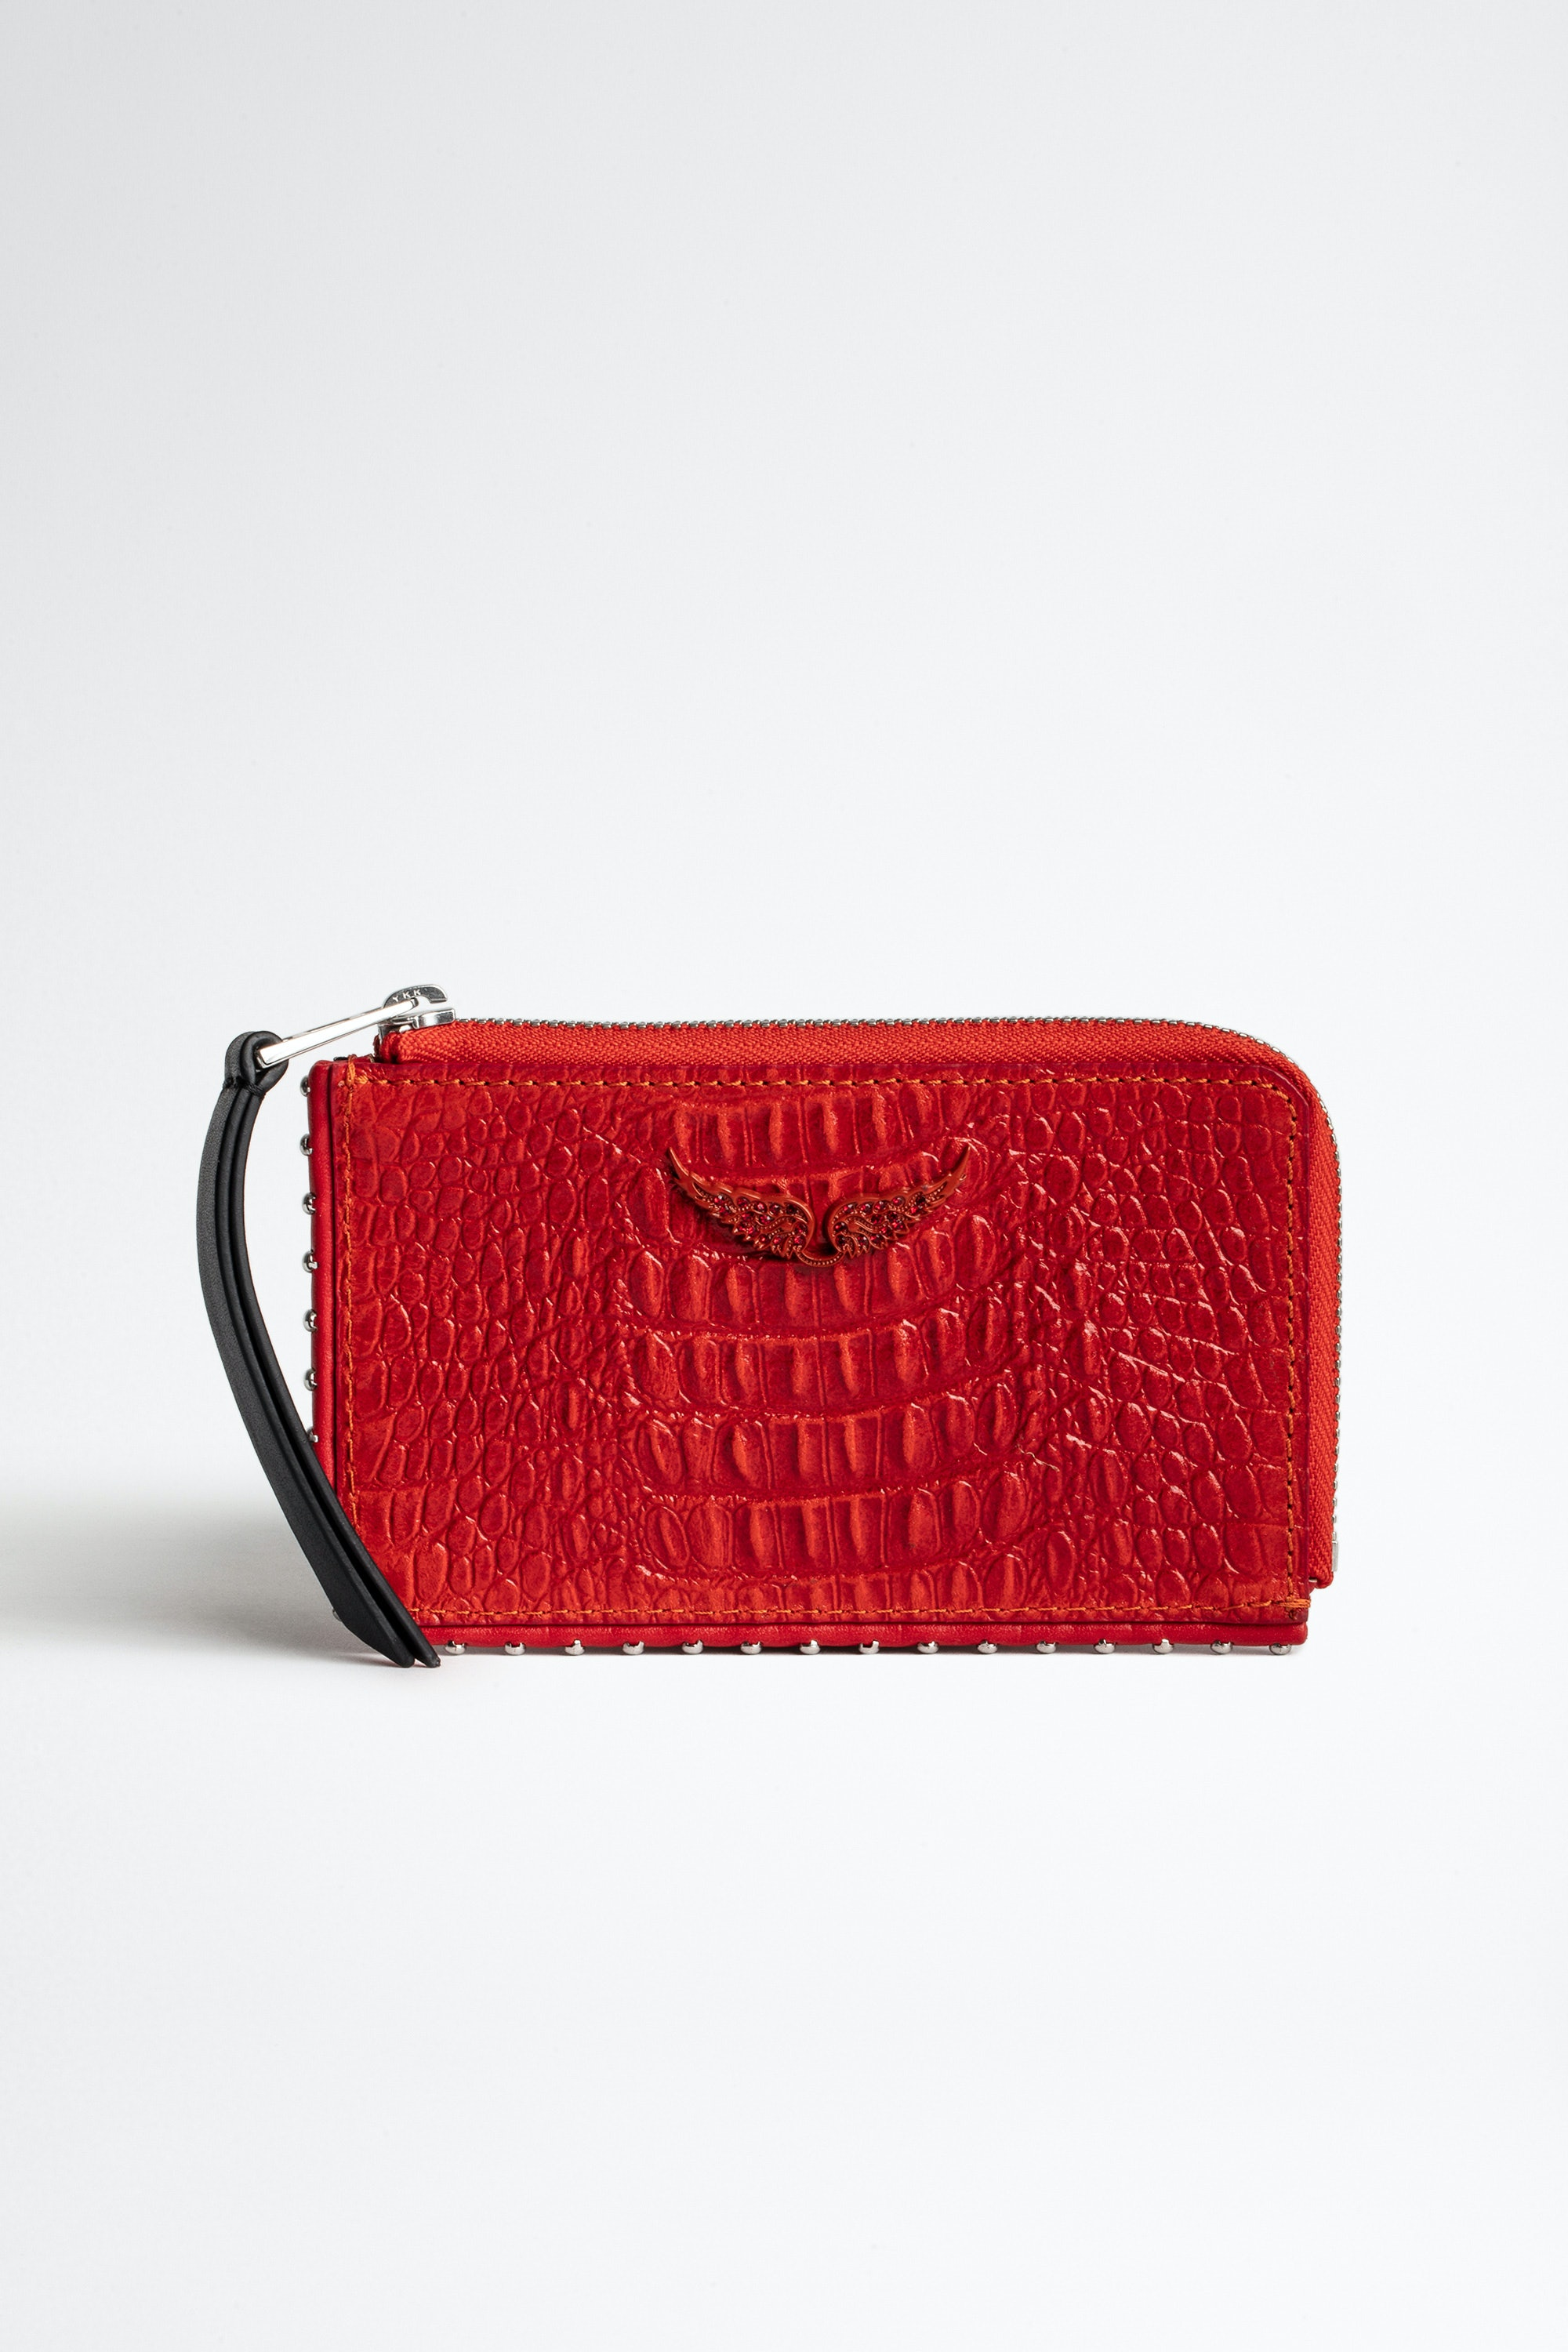 Kartenetui Zv Card Embossed Tiny Croco